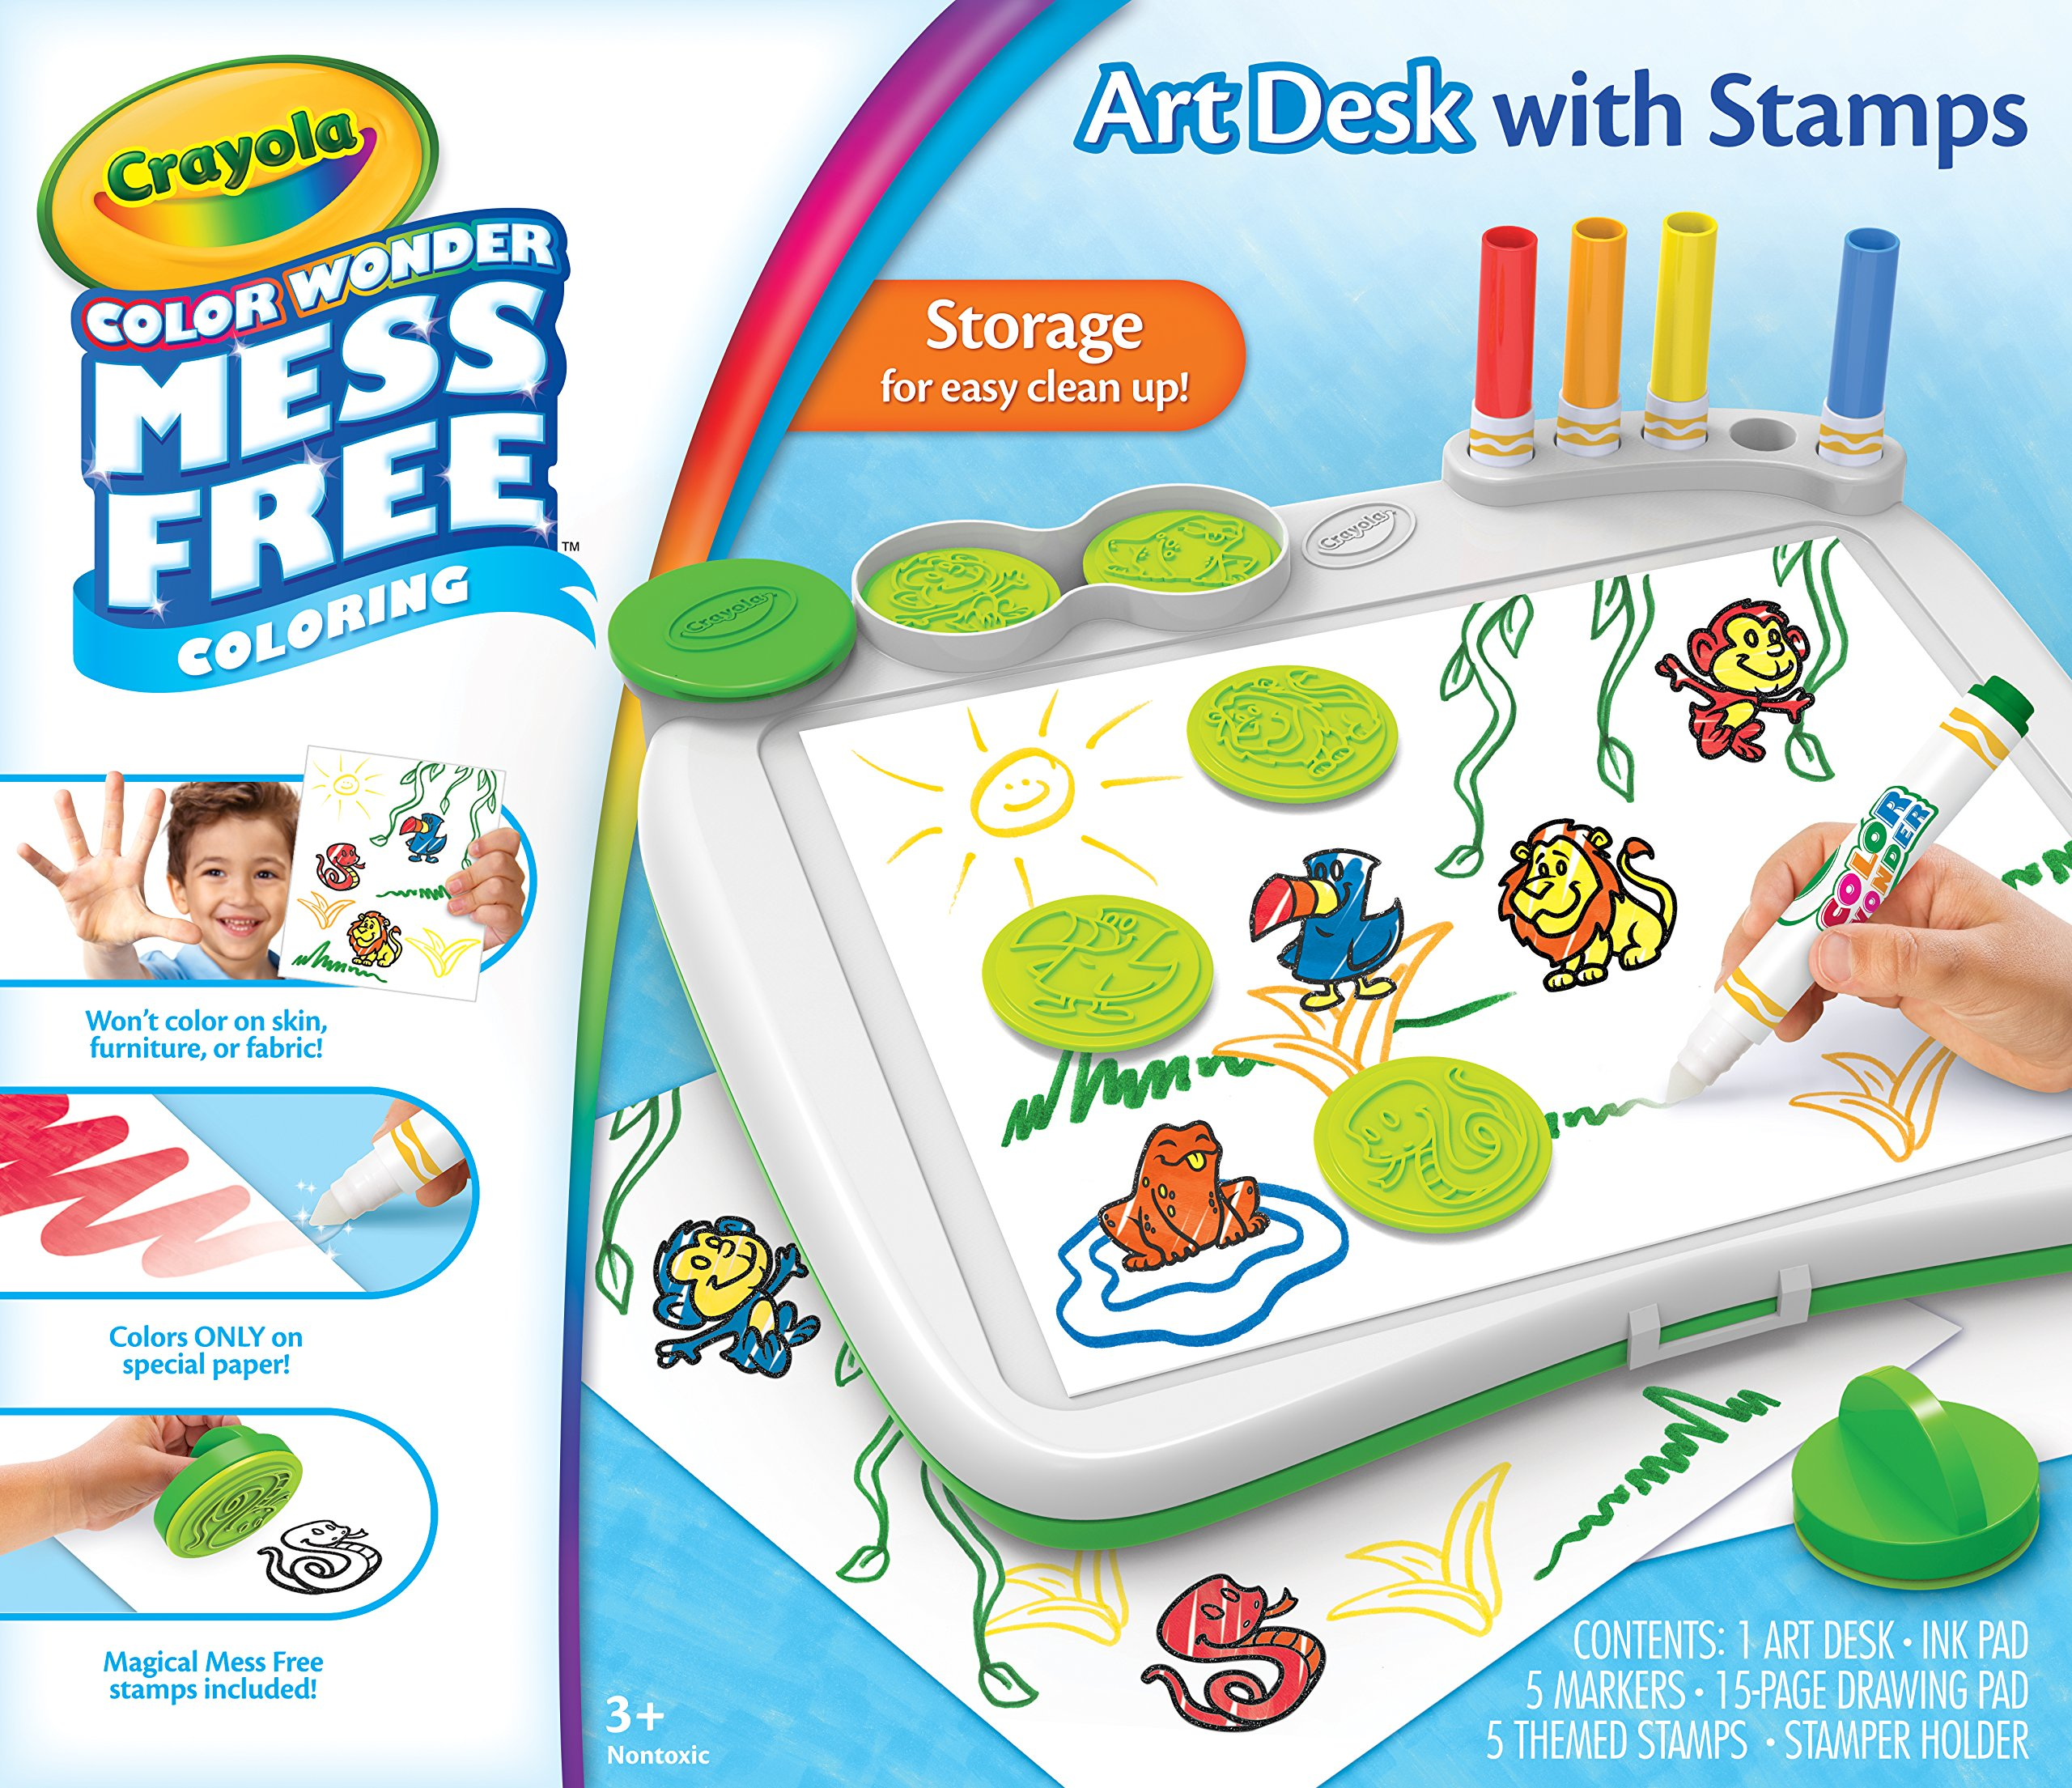 Crayola Color Wonder Art Desk with Stamps, Coloring Board, Mess